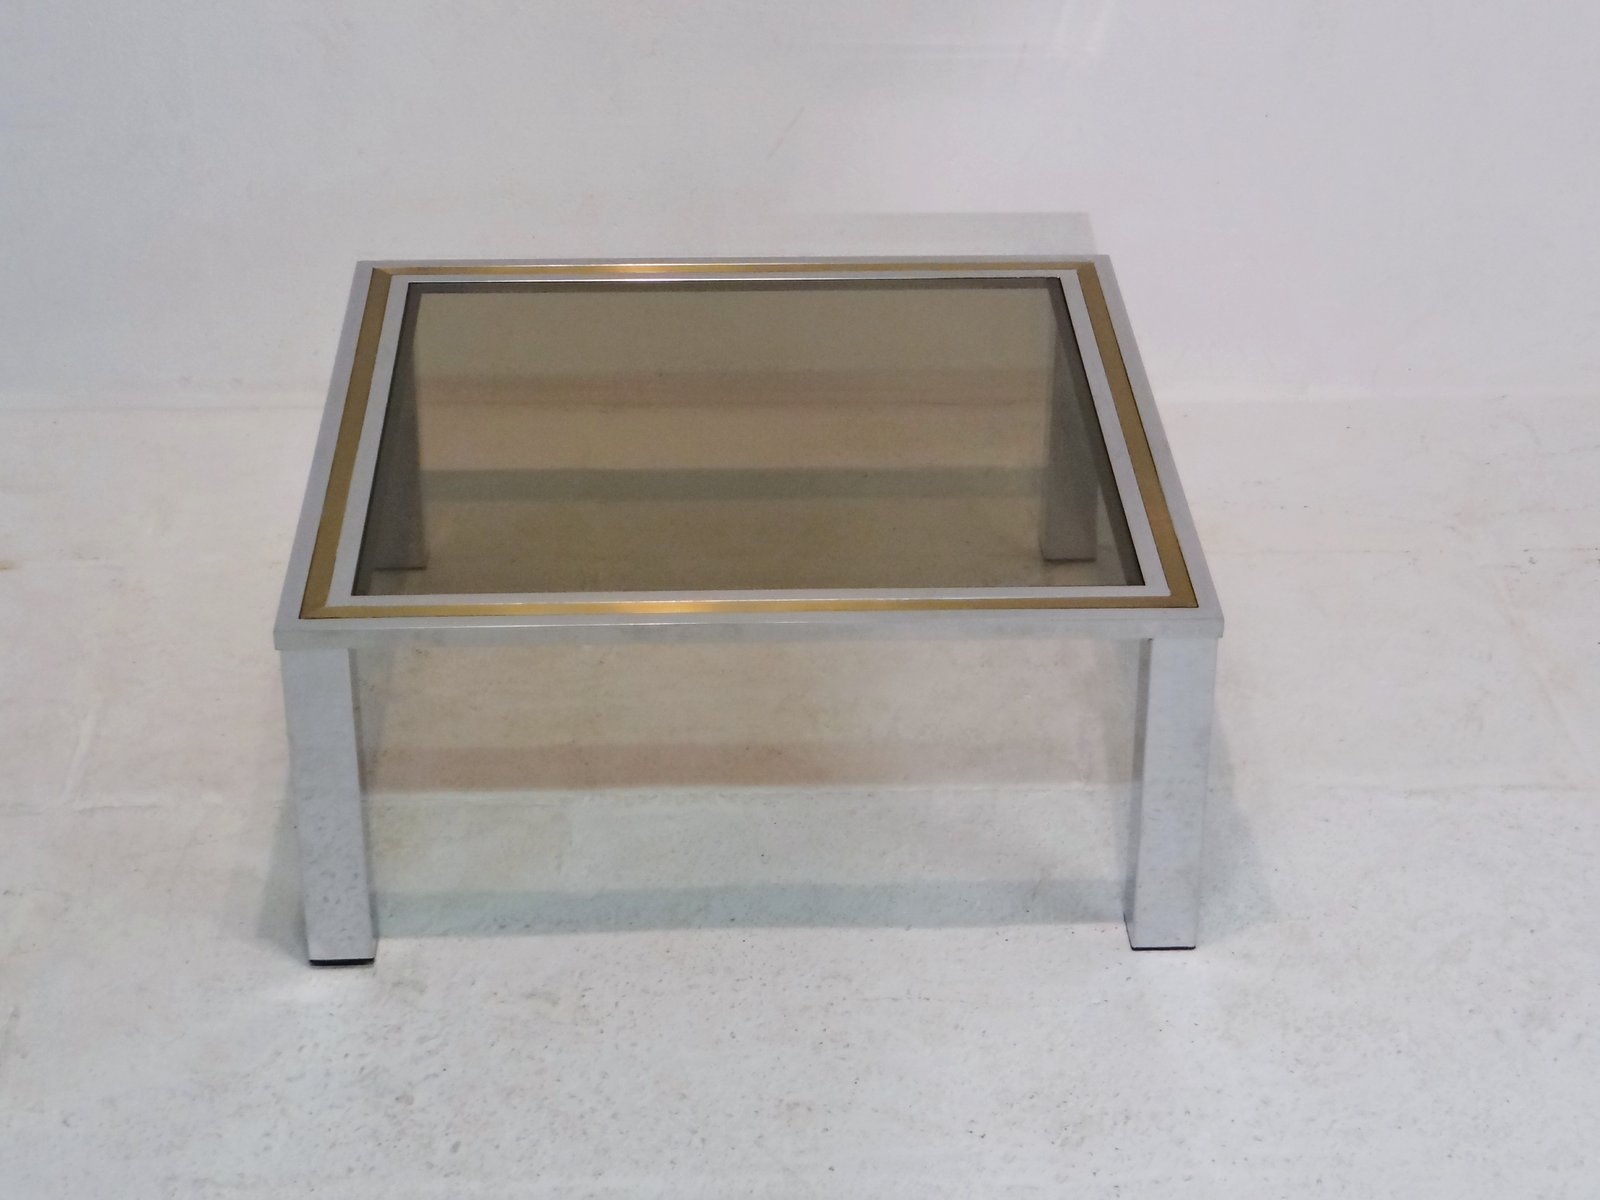 Vintage Coffee Table with Smoked Glass Top for sale at Pamono